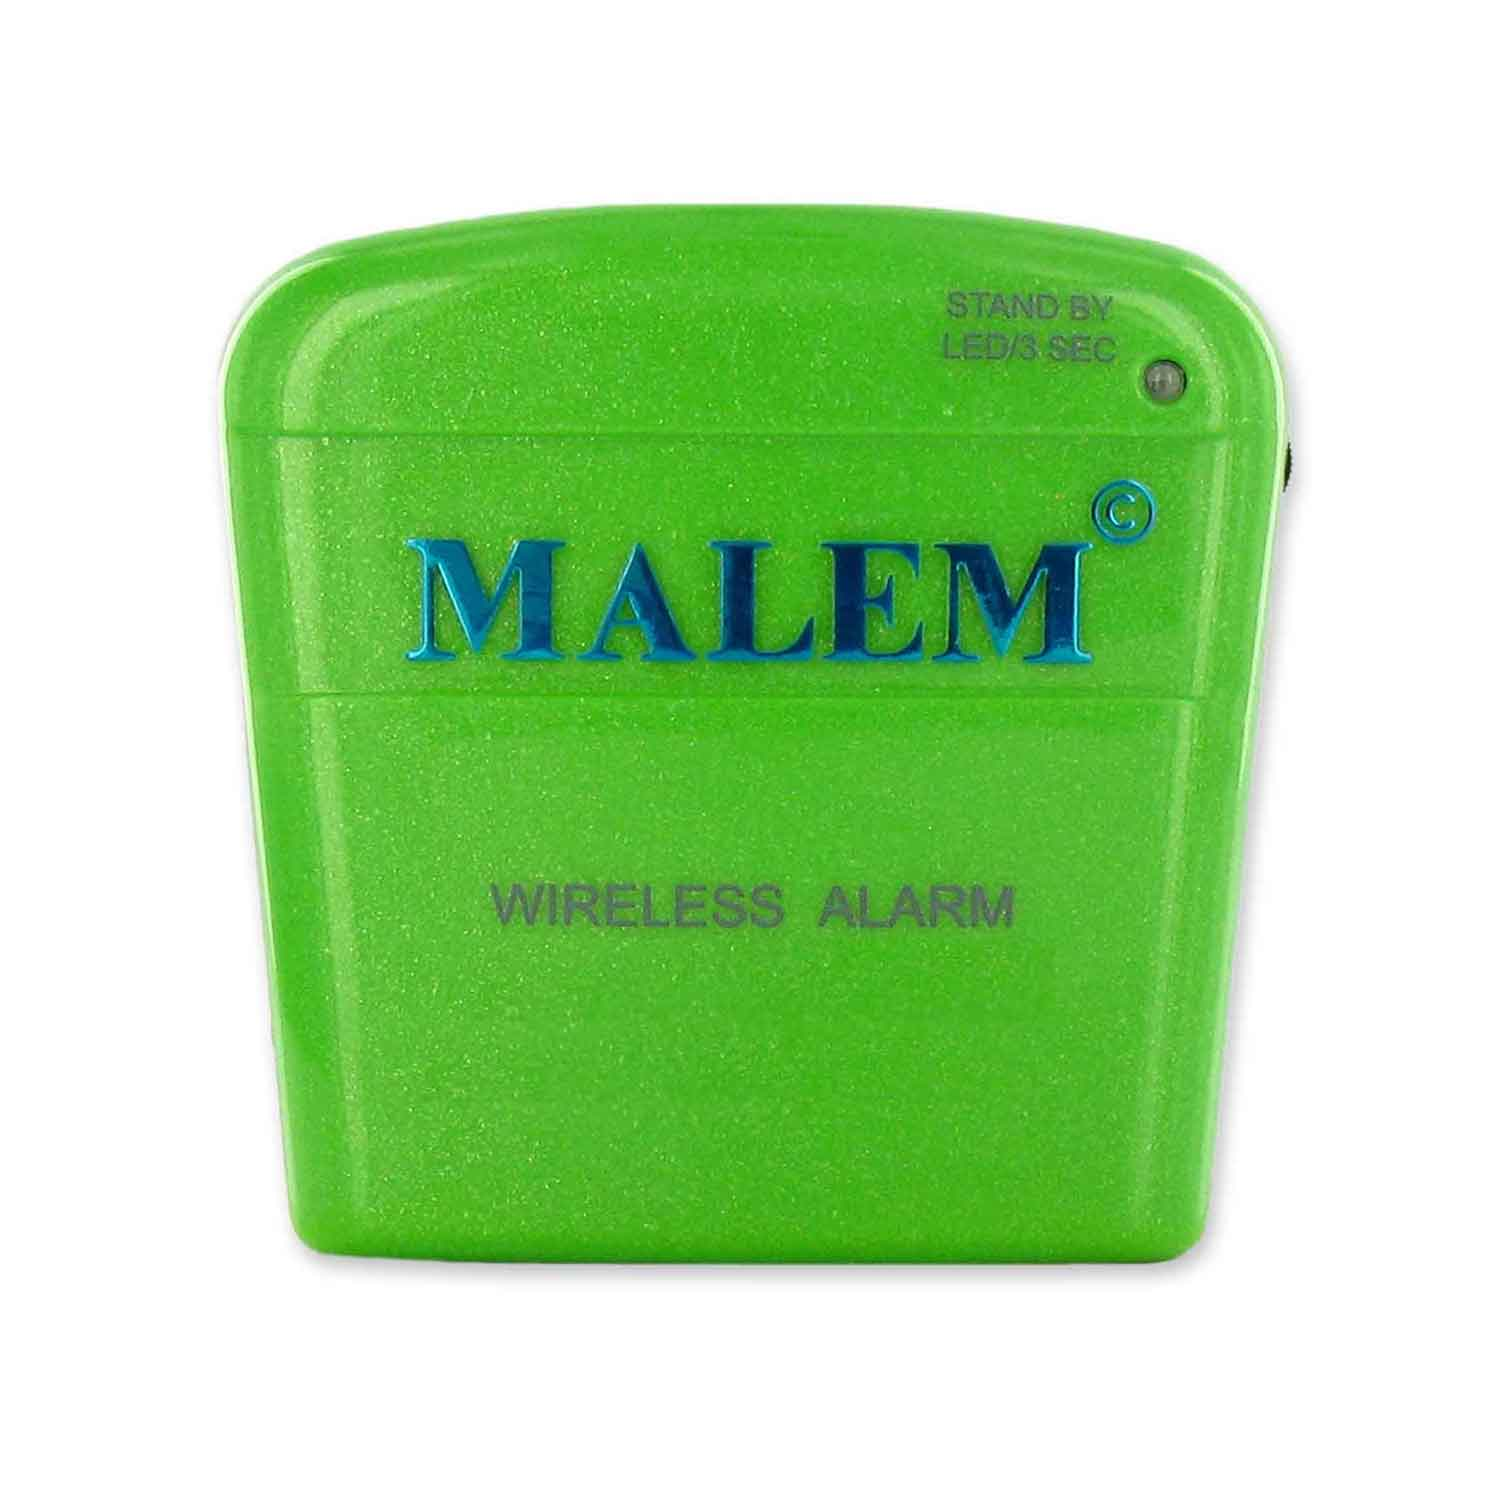 Accessories-Second Receiver for Malem Wireless